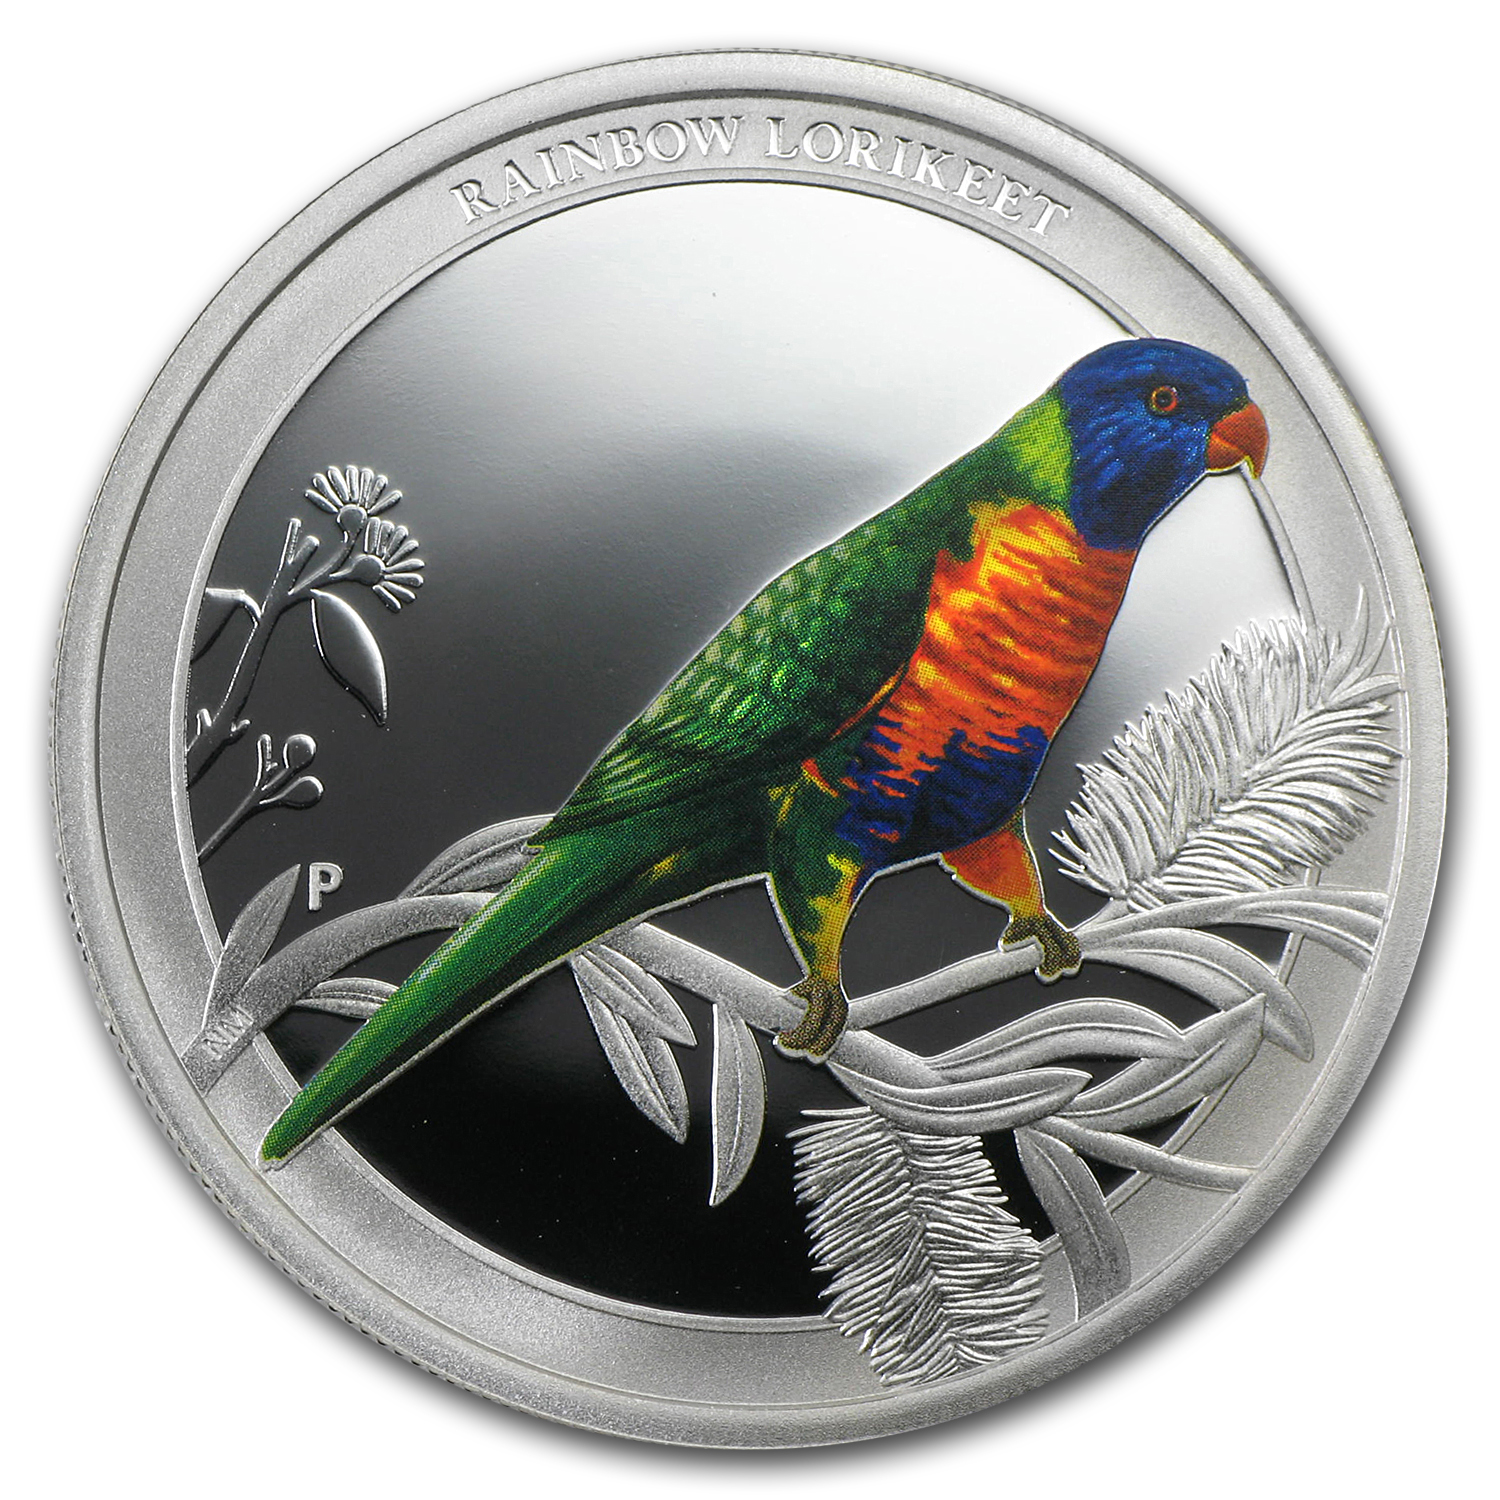 2013 Australia 1/2 oz Silver Rainbow Lorikeet Proof